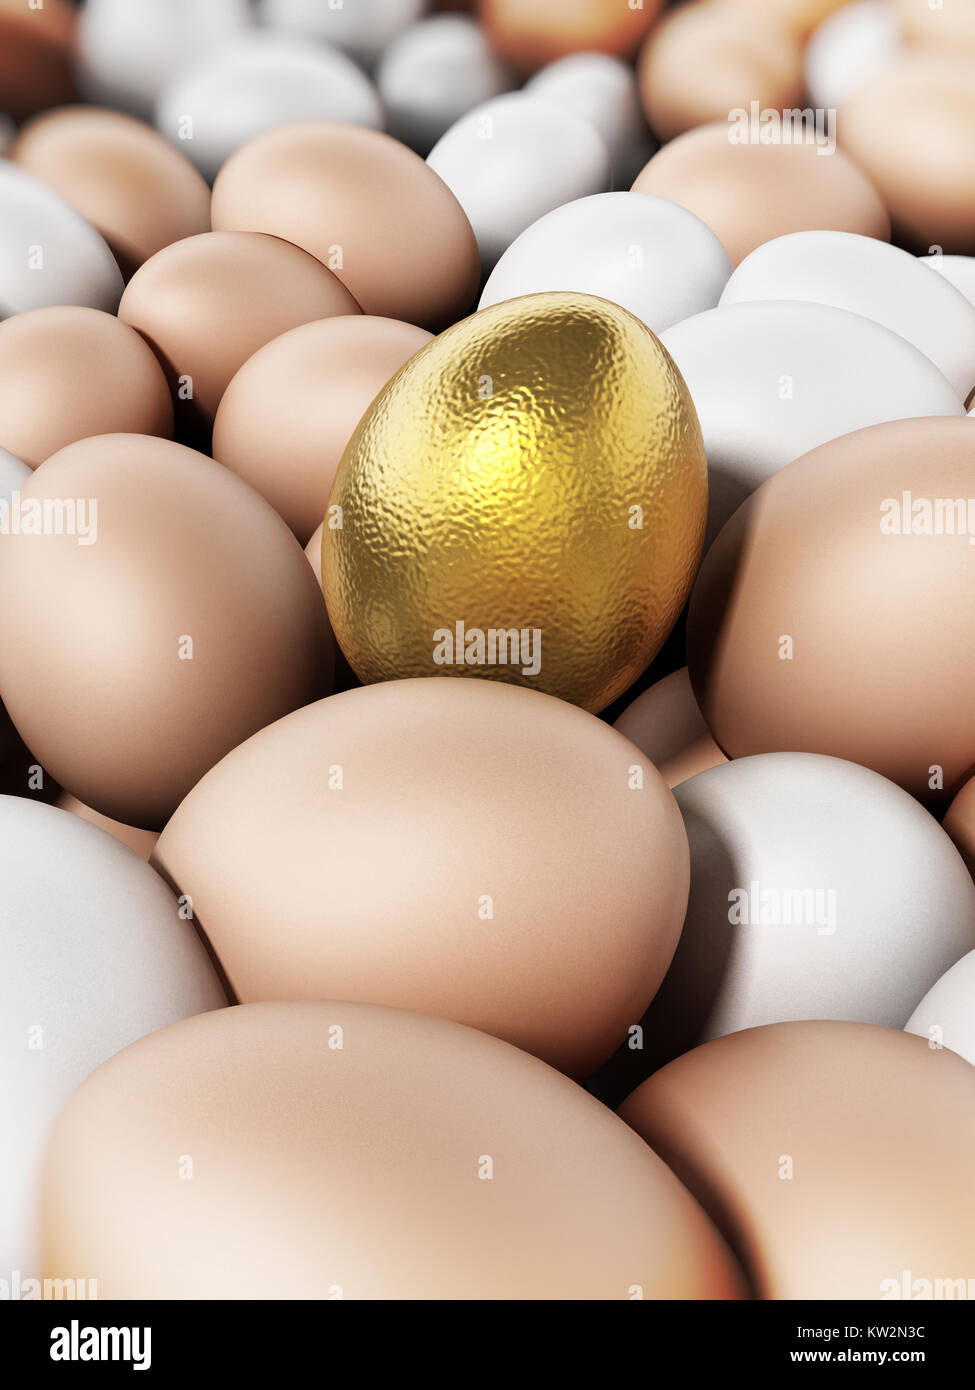 Golden egg standing out among brown and white eggs. 3D illustration. - Stock Image